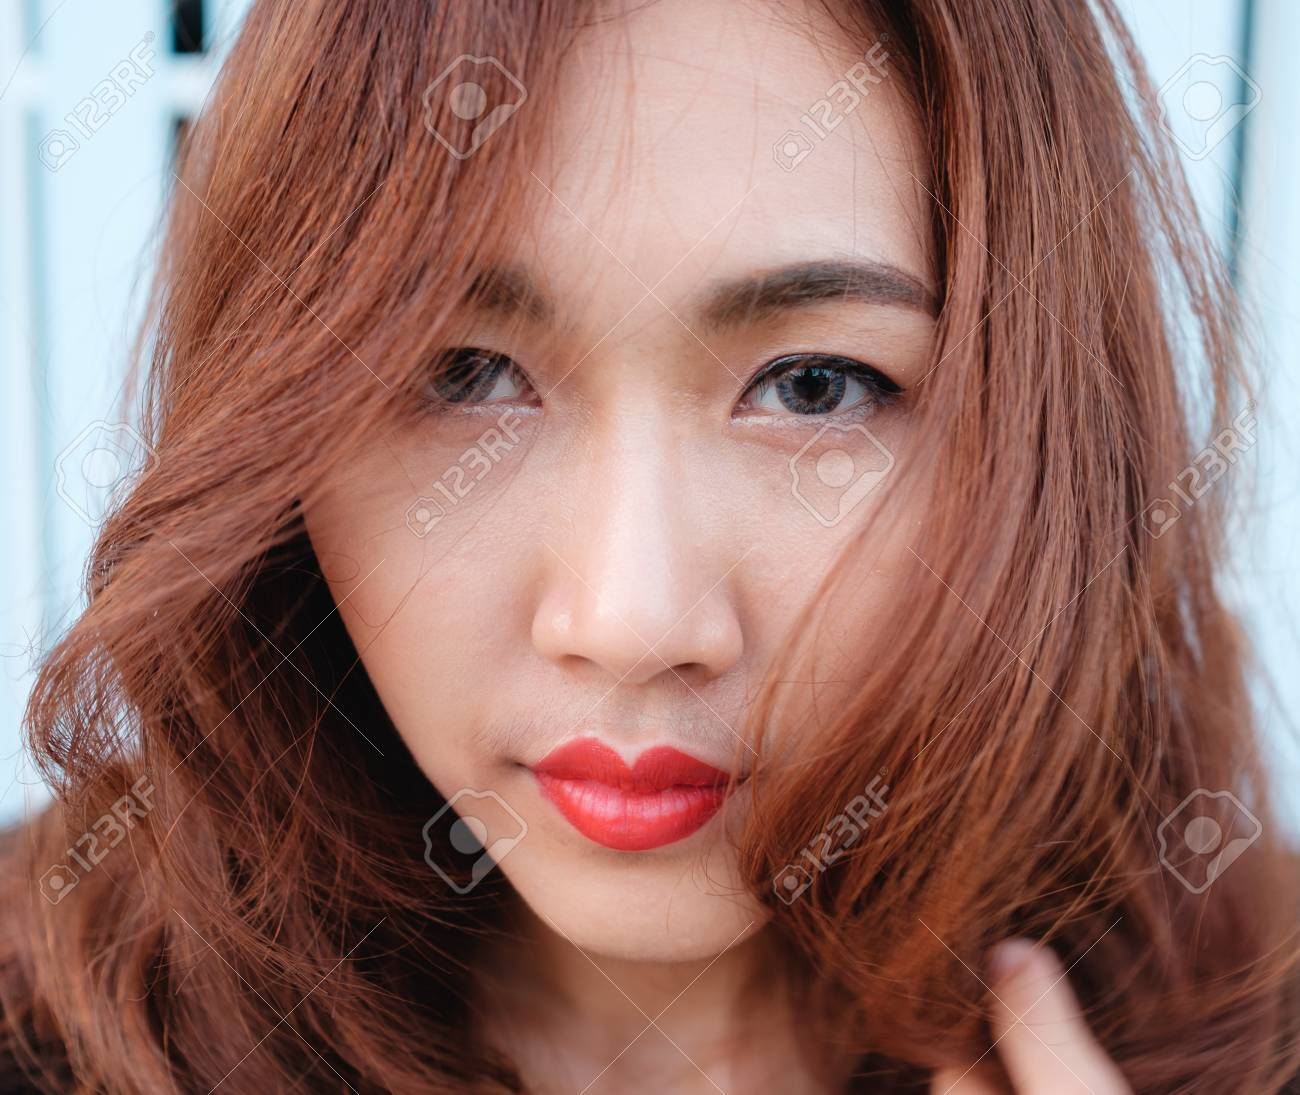 Close Up On Eyes And Face Asian Beauty Hair,Portrait Of Tender Natural  Beautiful Redhead